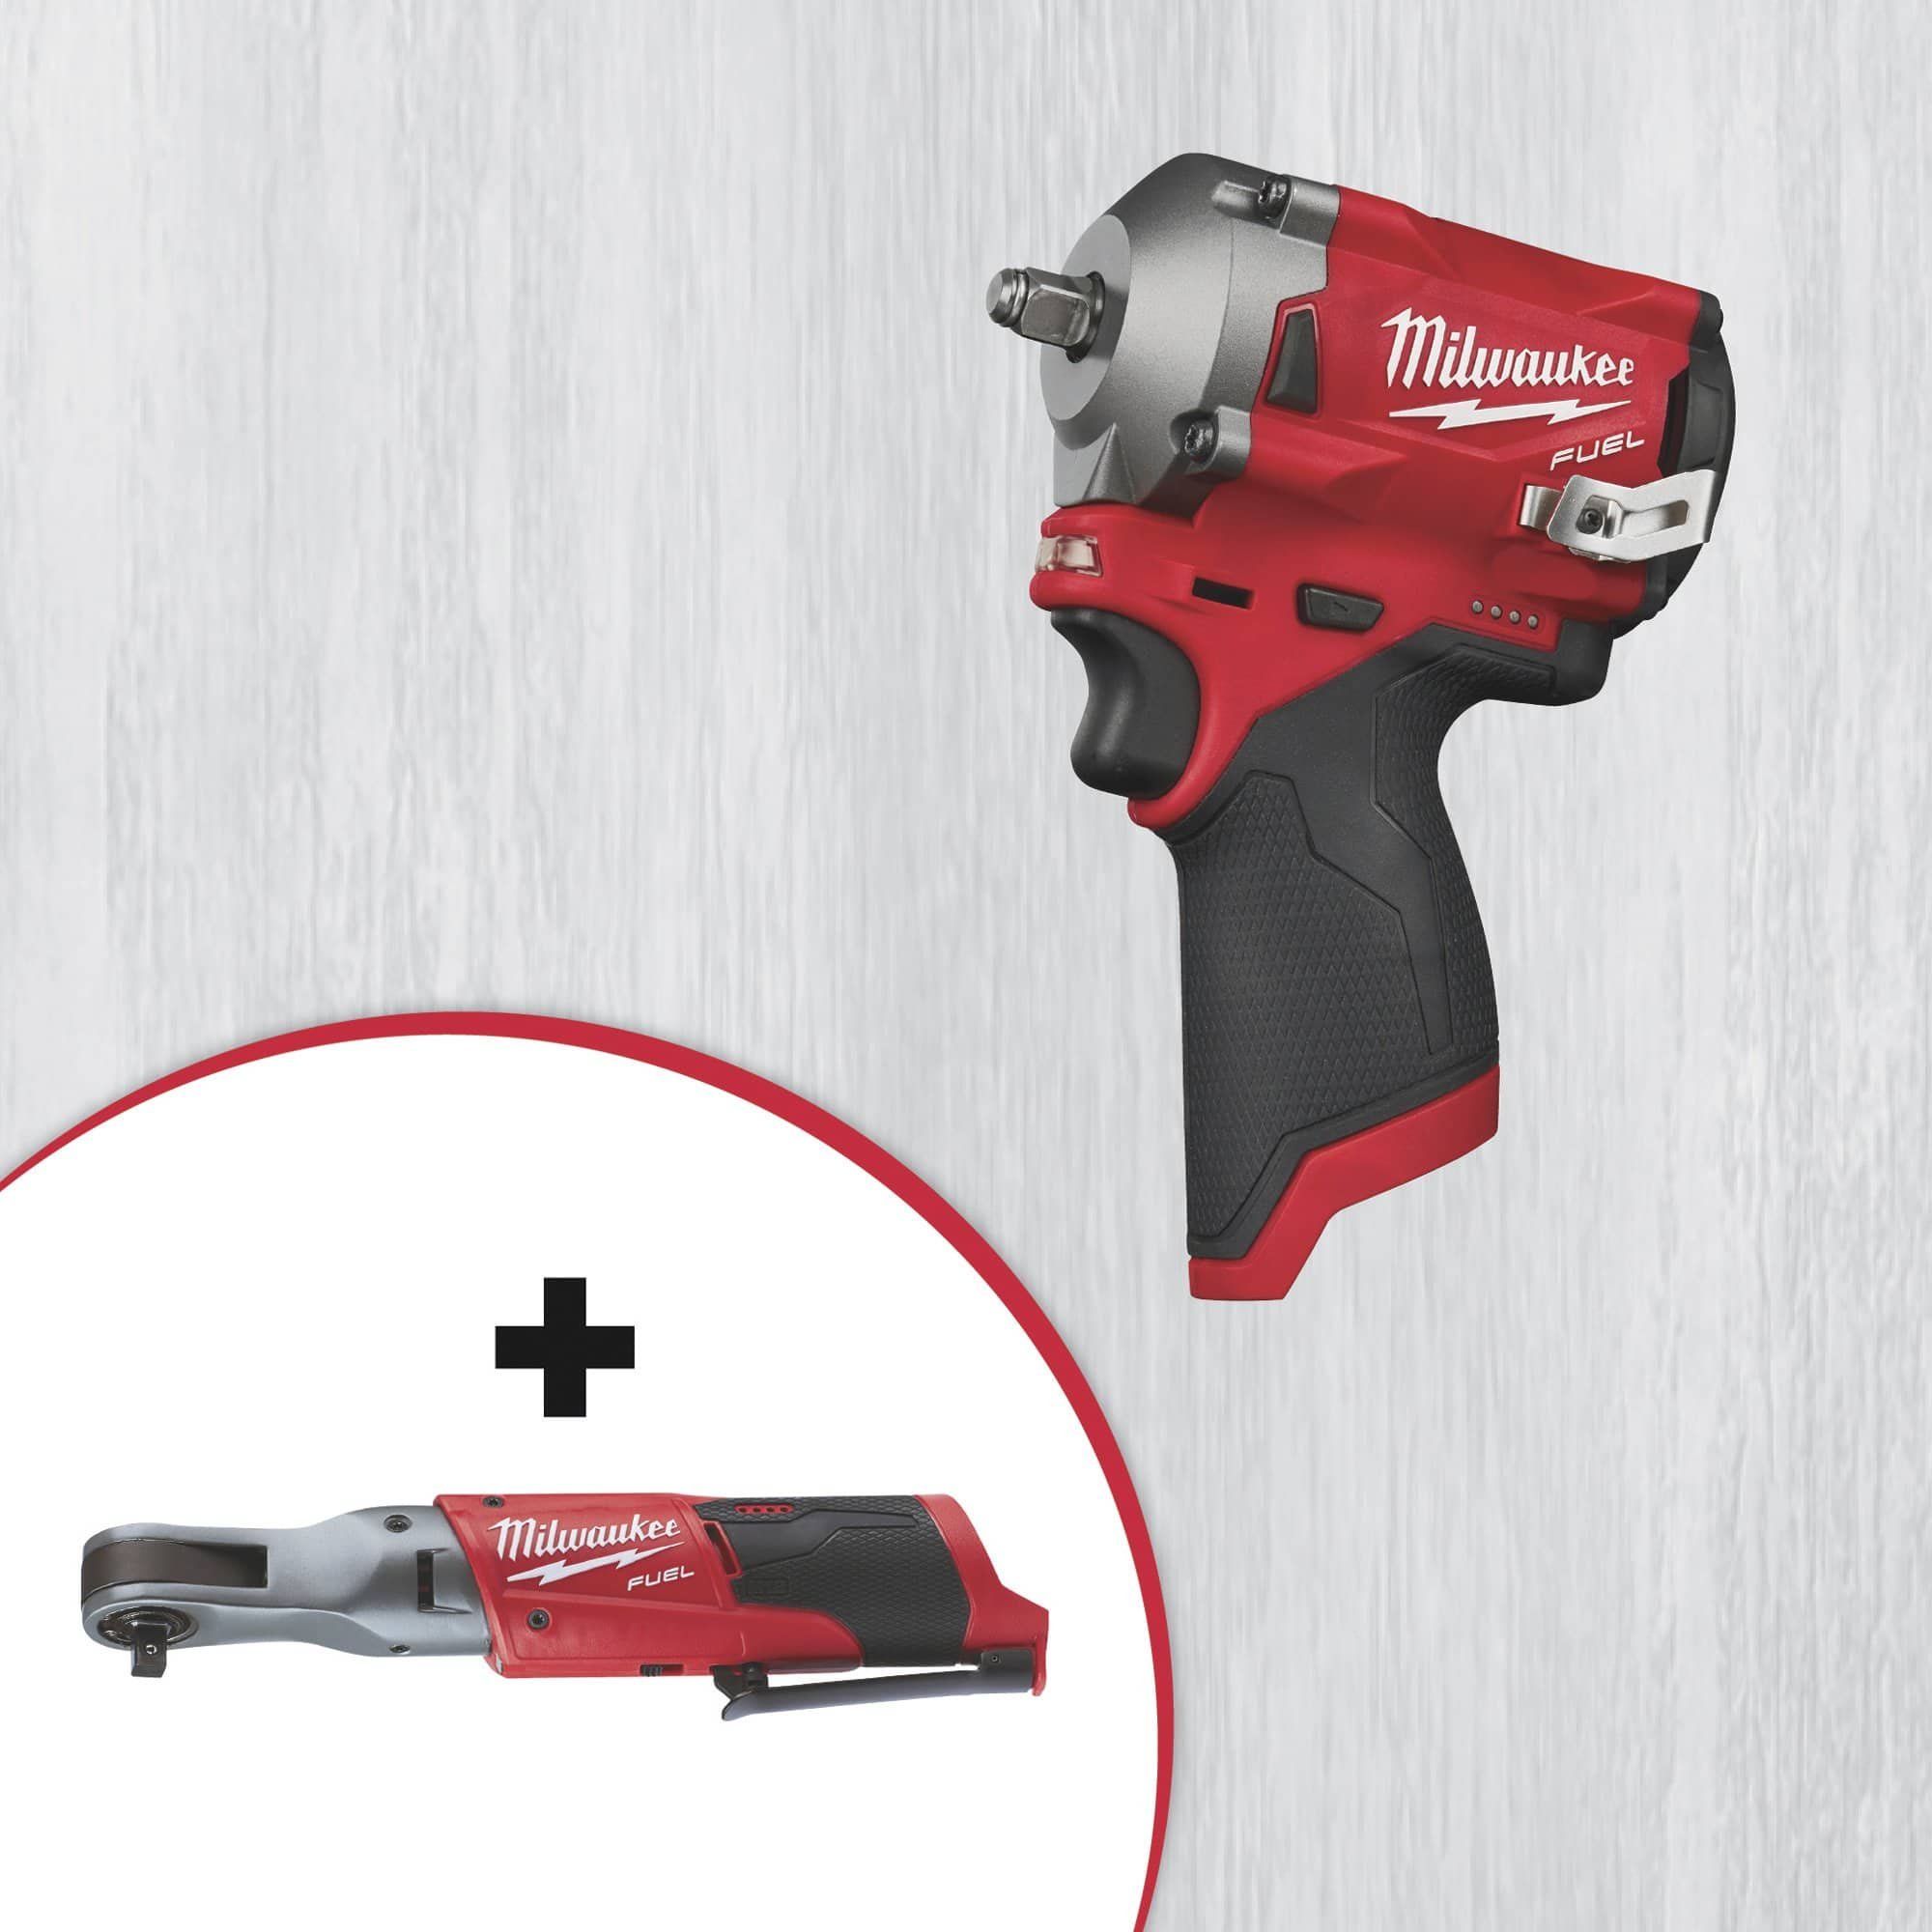 Milwaukee M12 Stubby 3/8 impact wrench & M12 Fuel 3/8 Ratchet for $259 at Northern tool